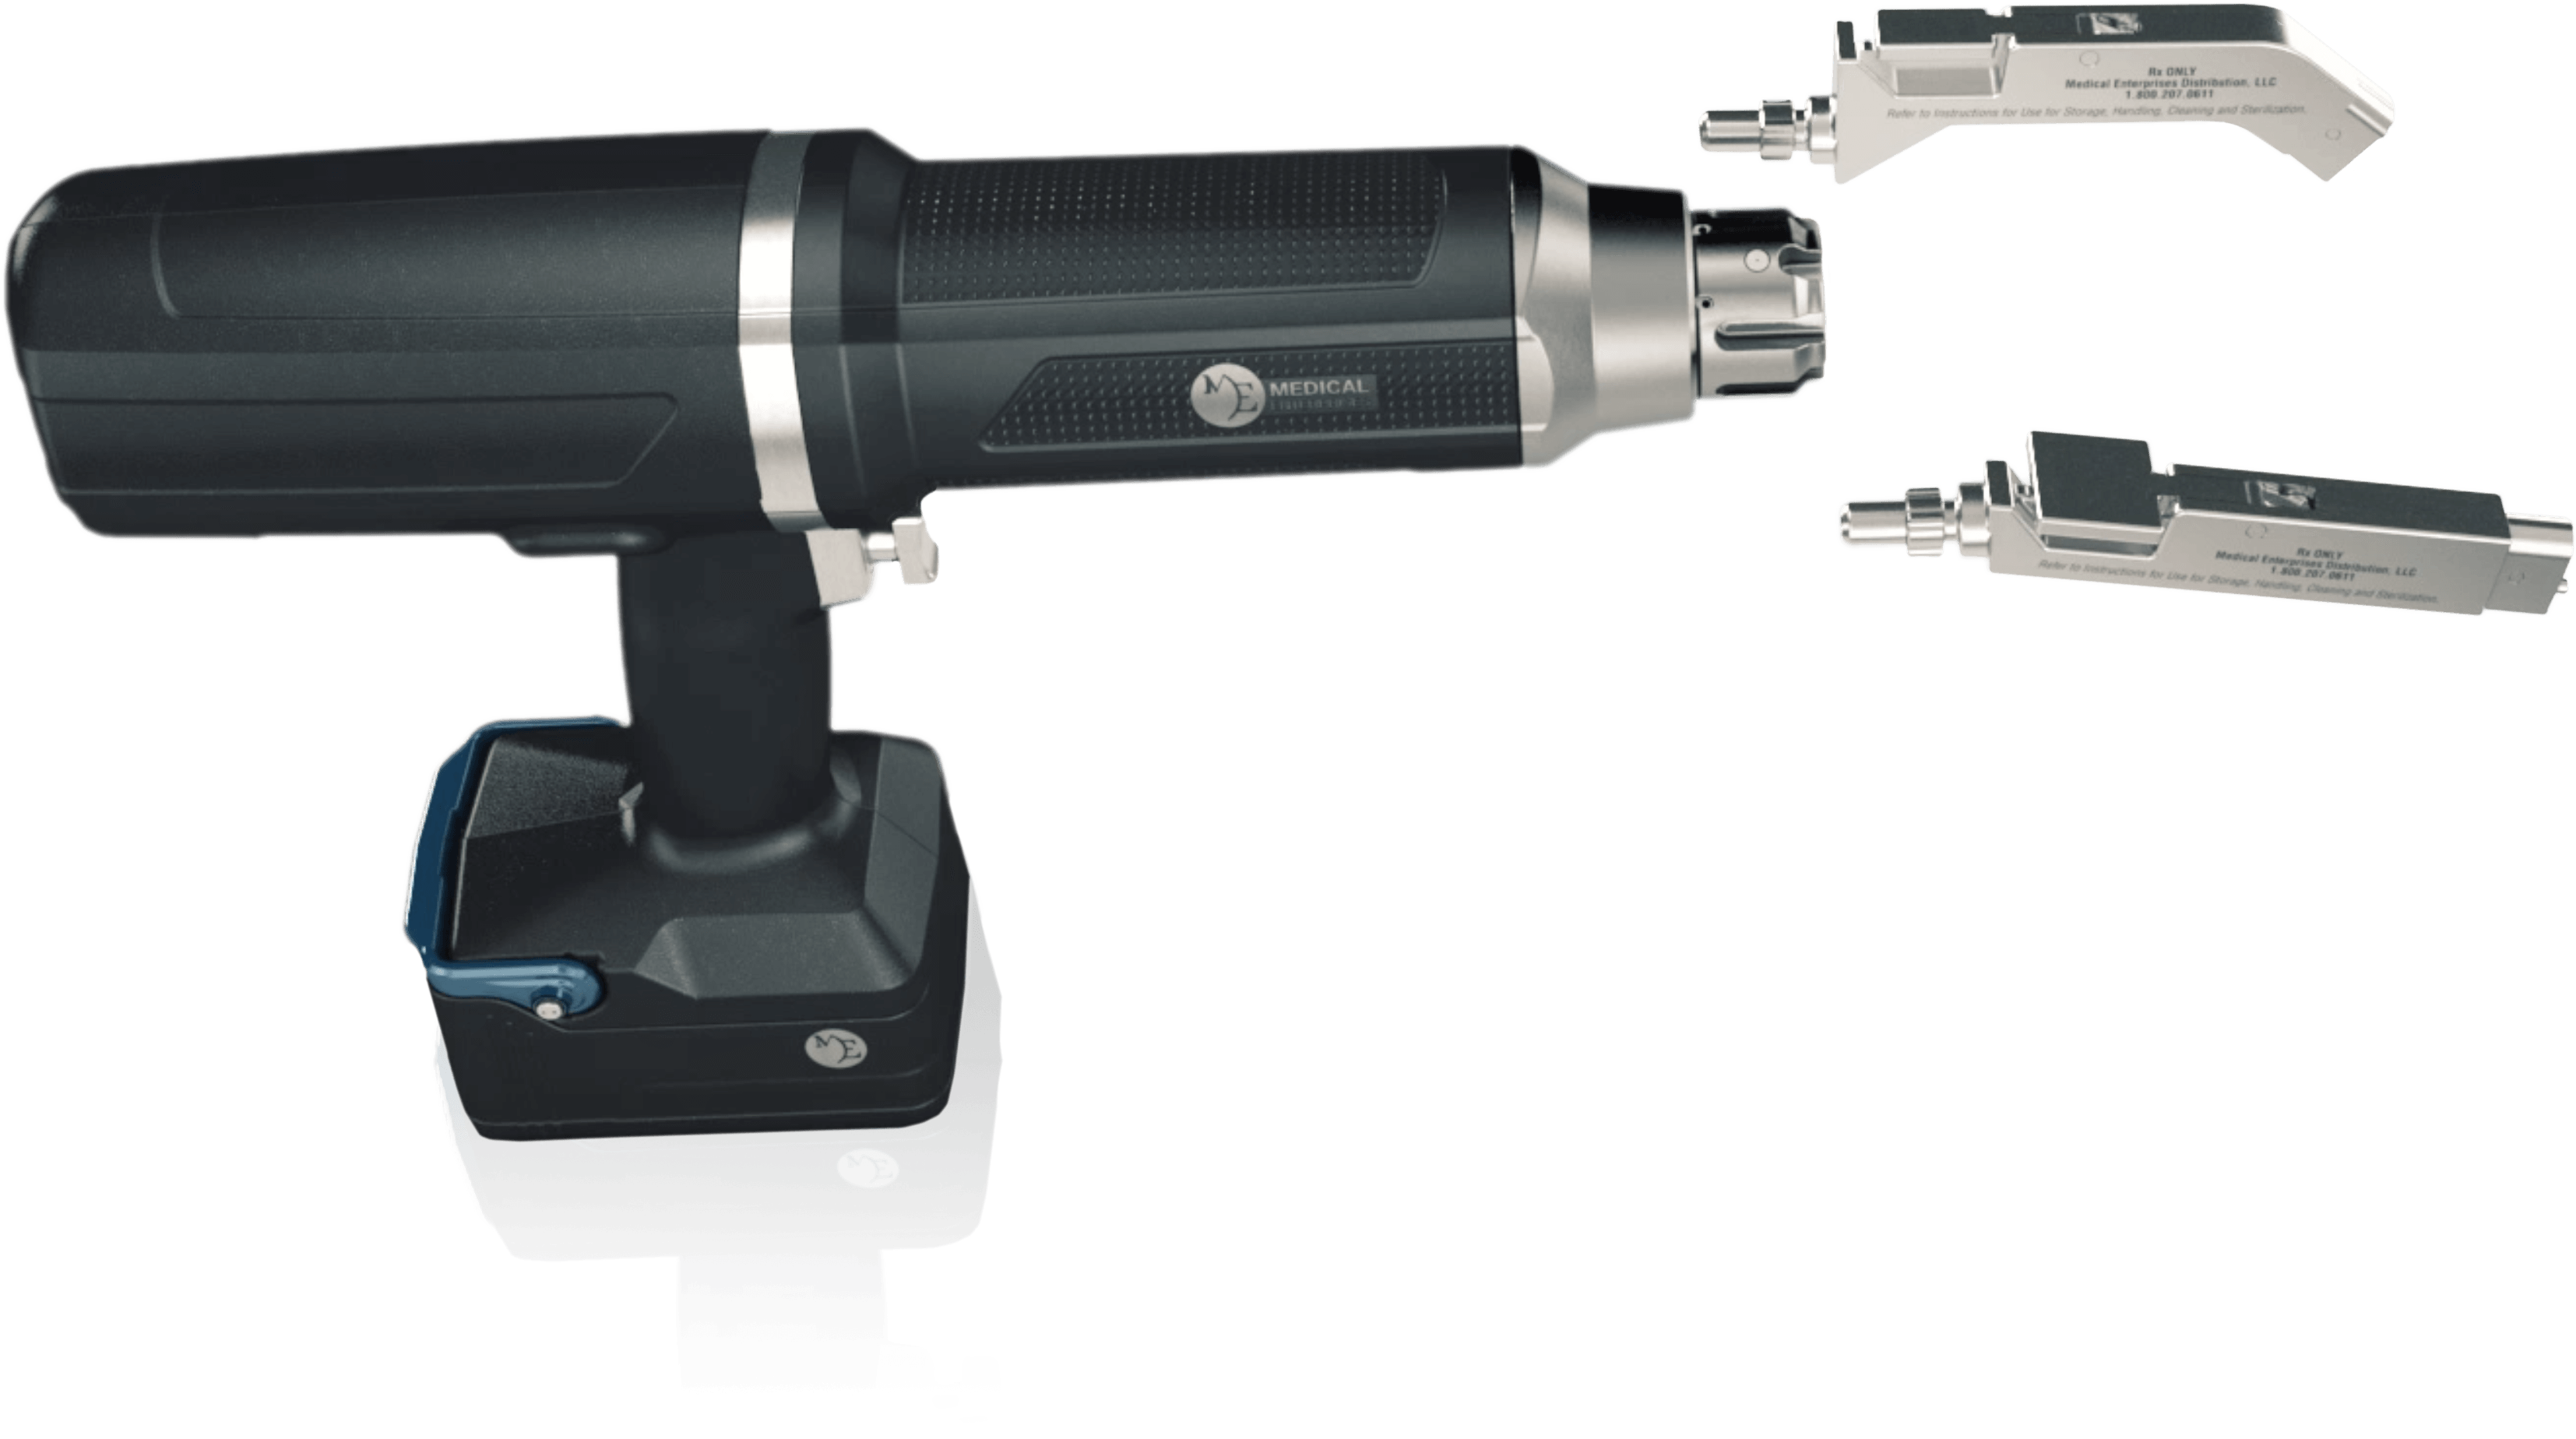 DePuy Synthes acquires battery powered impactor for total hip broaching